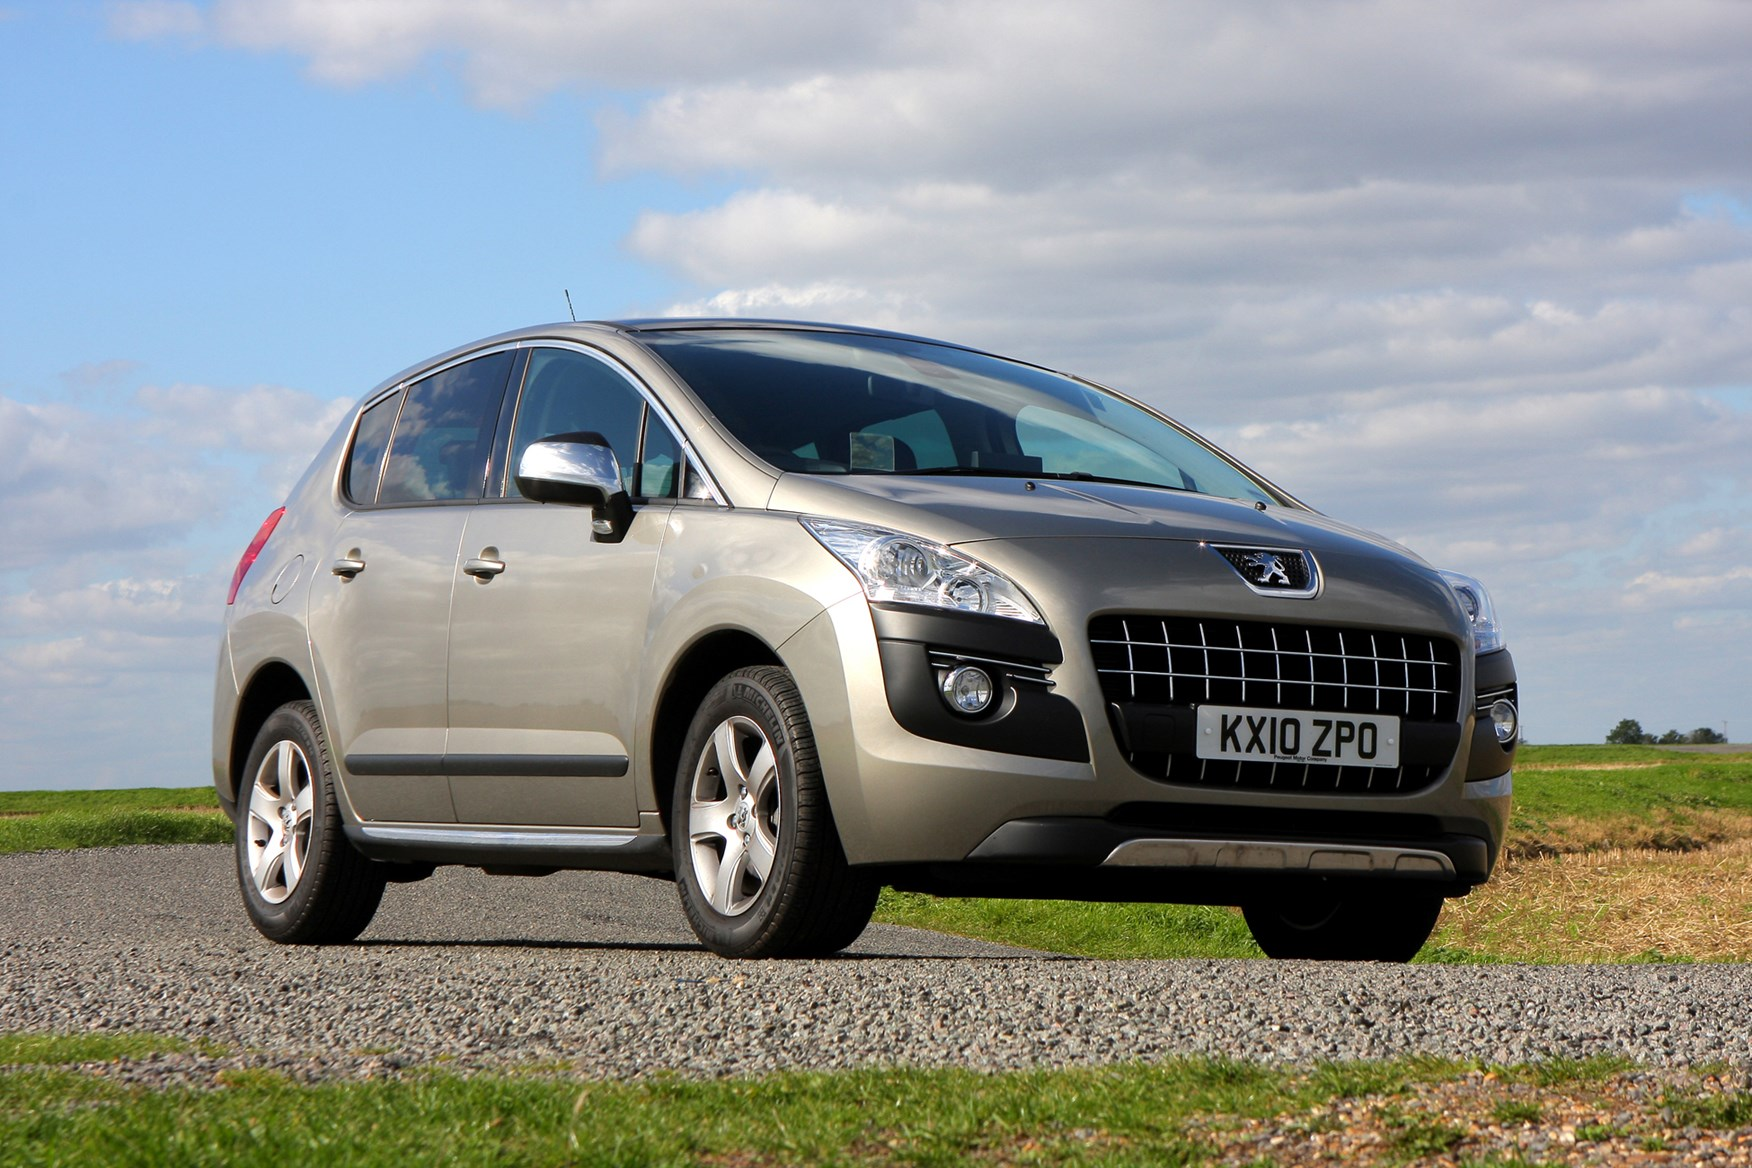 peugeot 3008 estate review 2009 2016 parkers. Black Bedroom Furniture Sets. Home Design Ideas